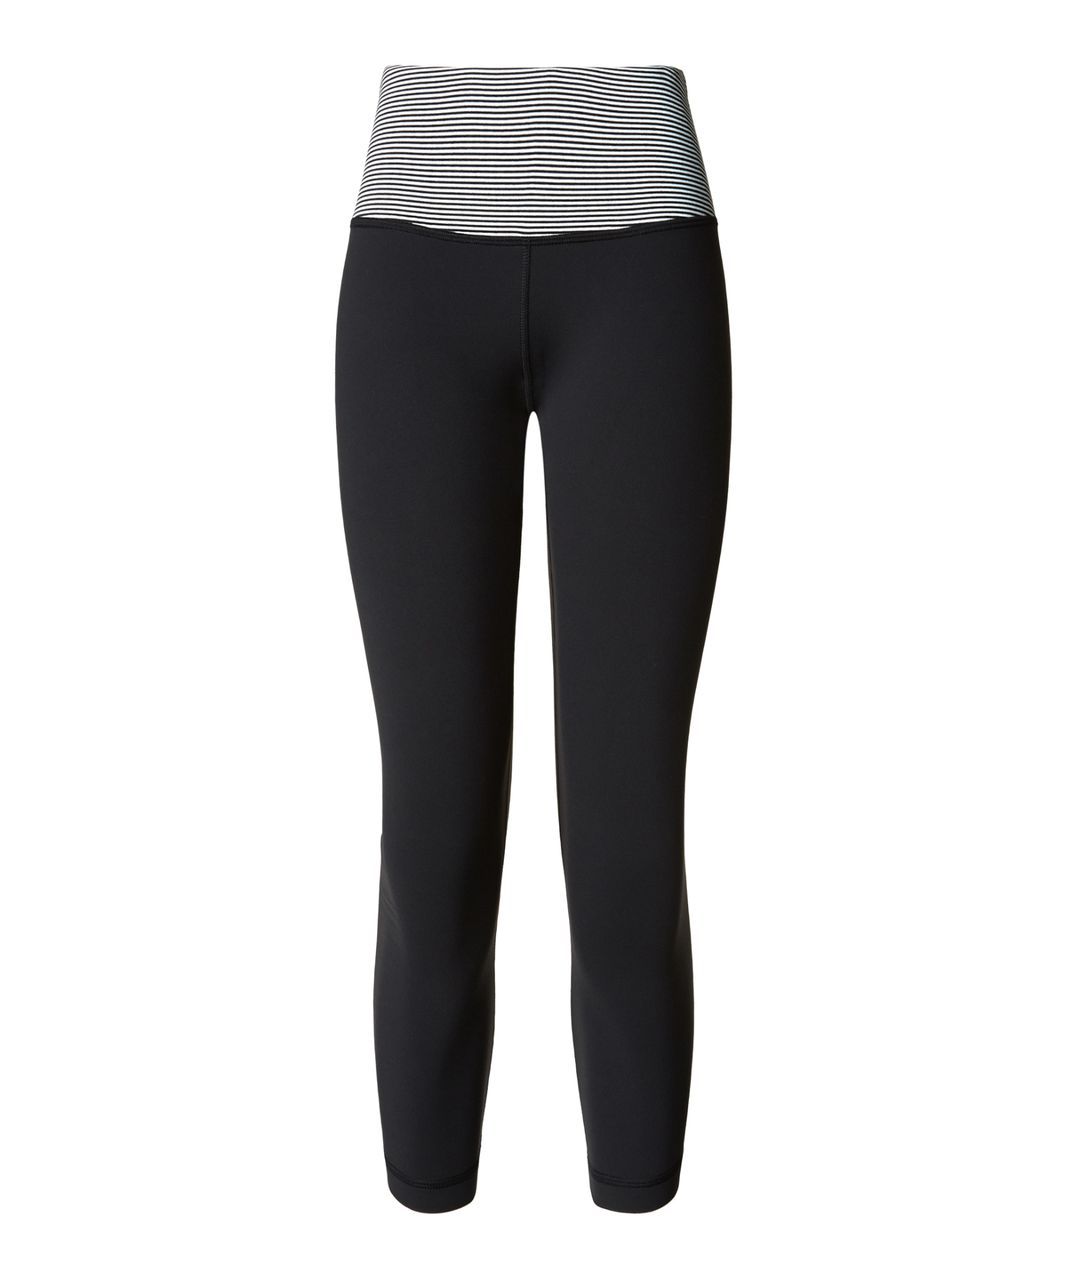 Lululemon Wunder Under Crop III - Black / Tonka Stripe Black White / Apex Stripe Black White